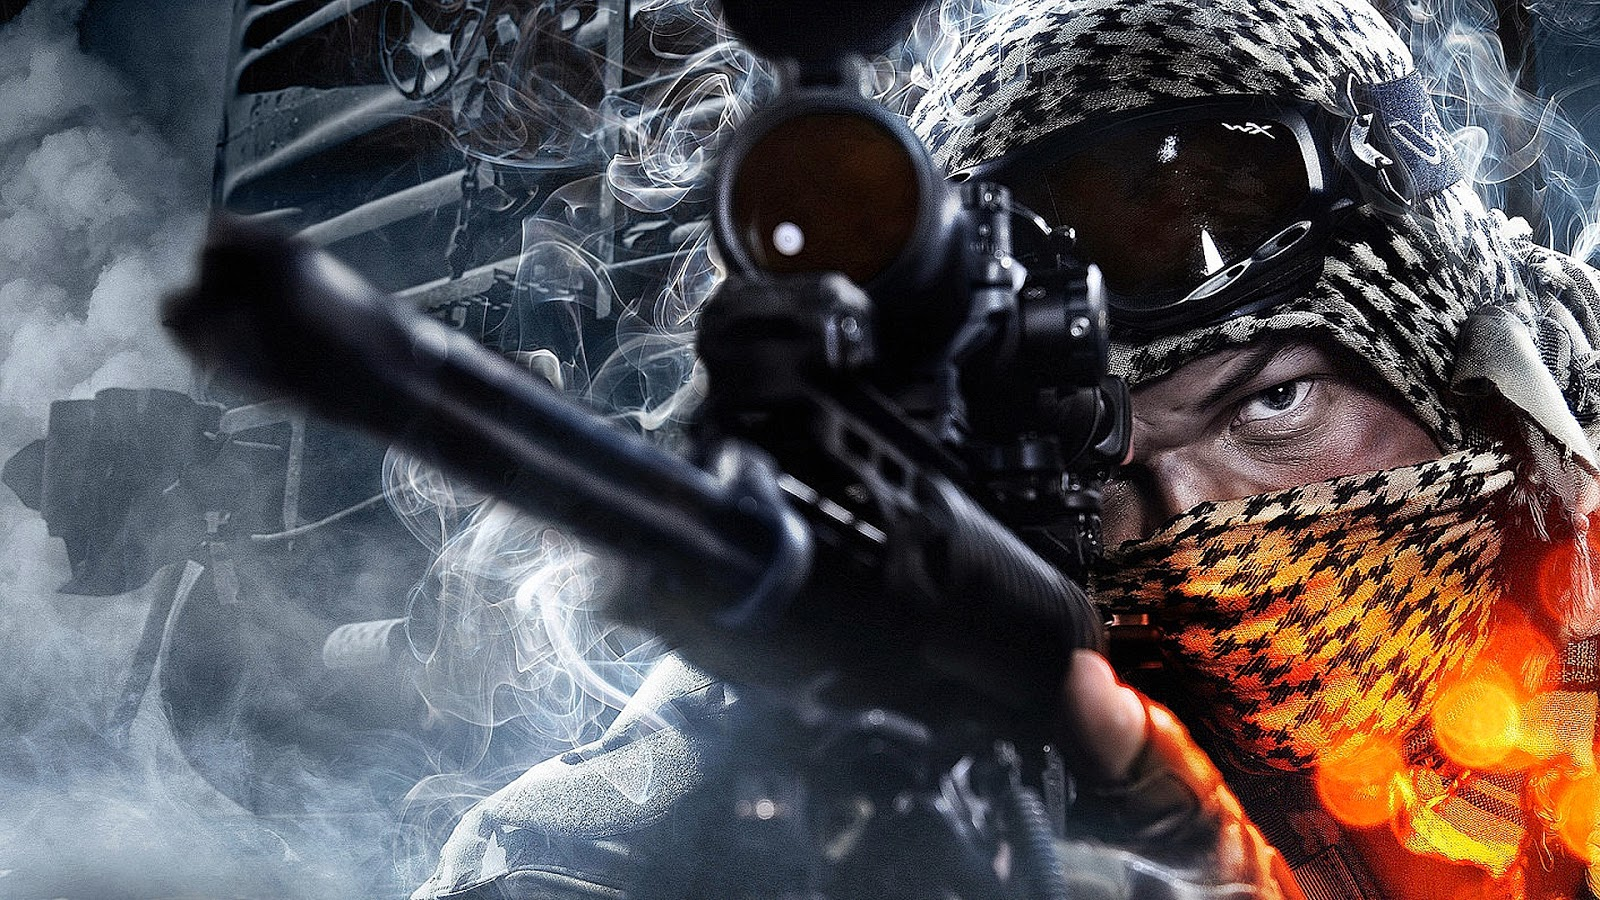 battlefield 4 recon / sniper wallpaper | game pictures and reviews